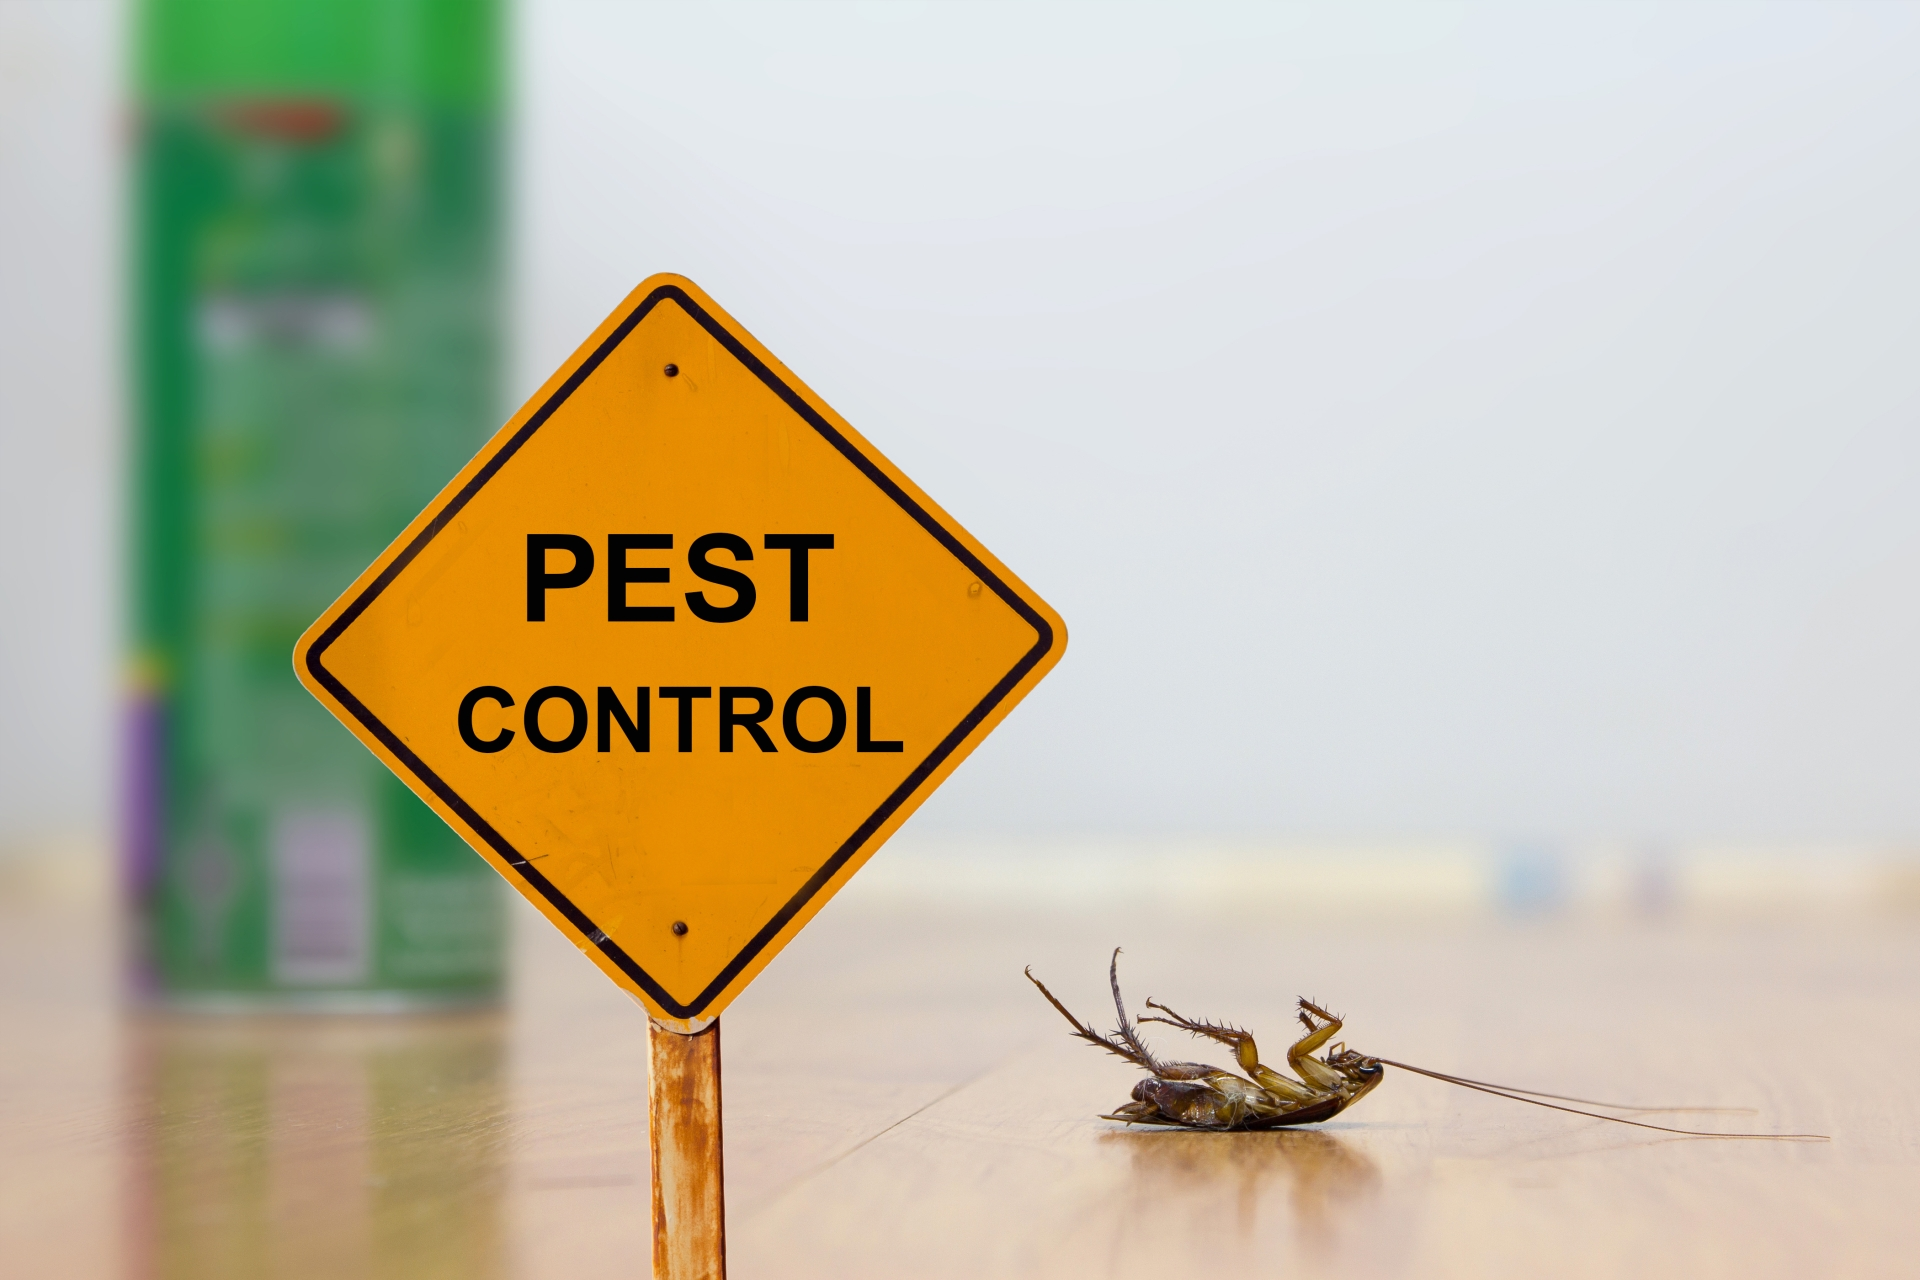 24 Hour Pest Control, Pest Control in Hayes, Harlington, UB3, UB4. Call Now 020 8166 9746